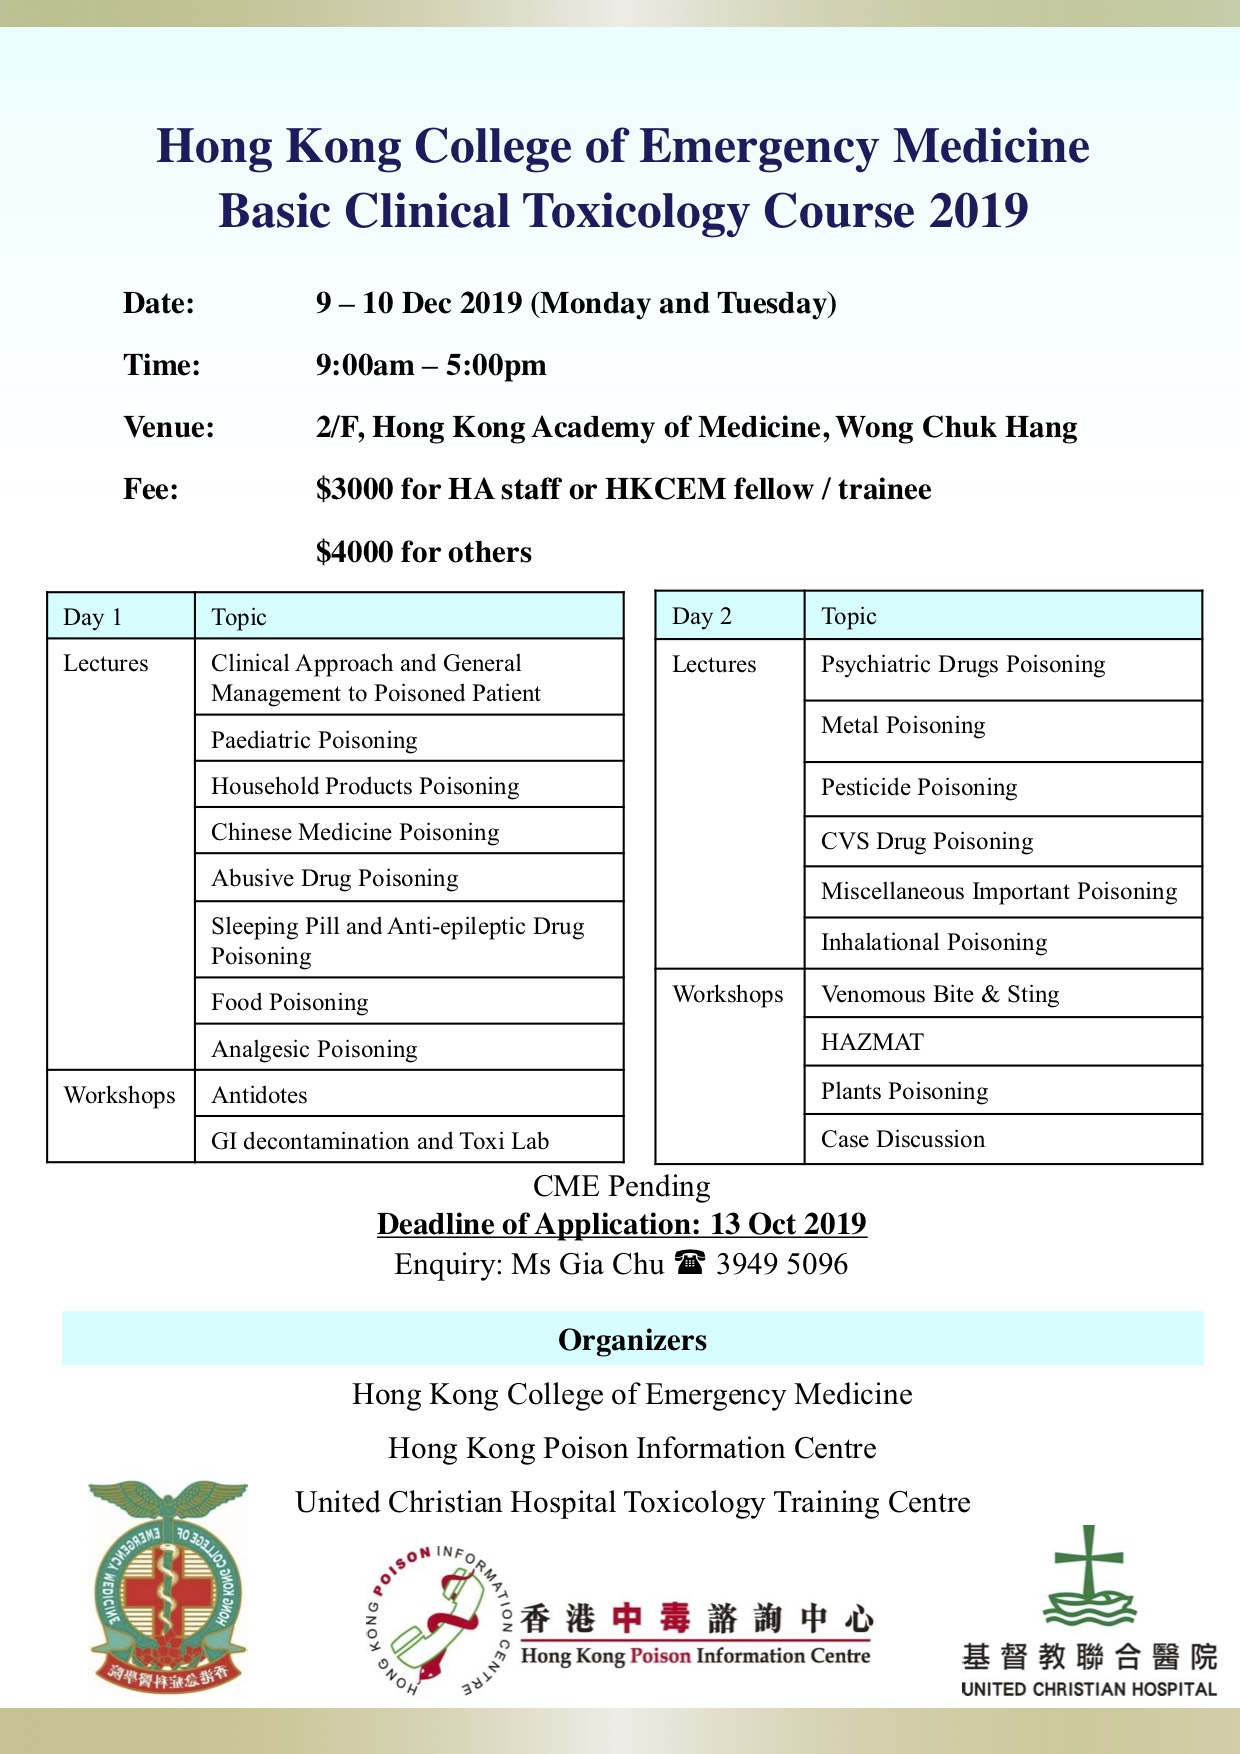 HKCEM Basic Clinical Toxicology Course 2019 poster 1